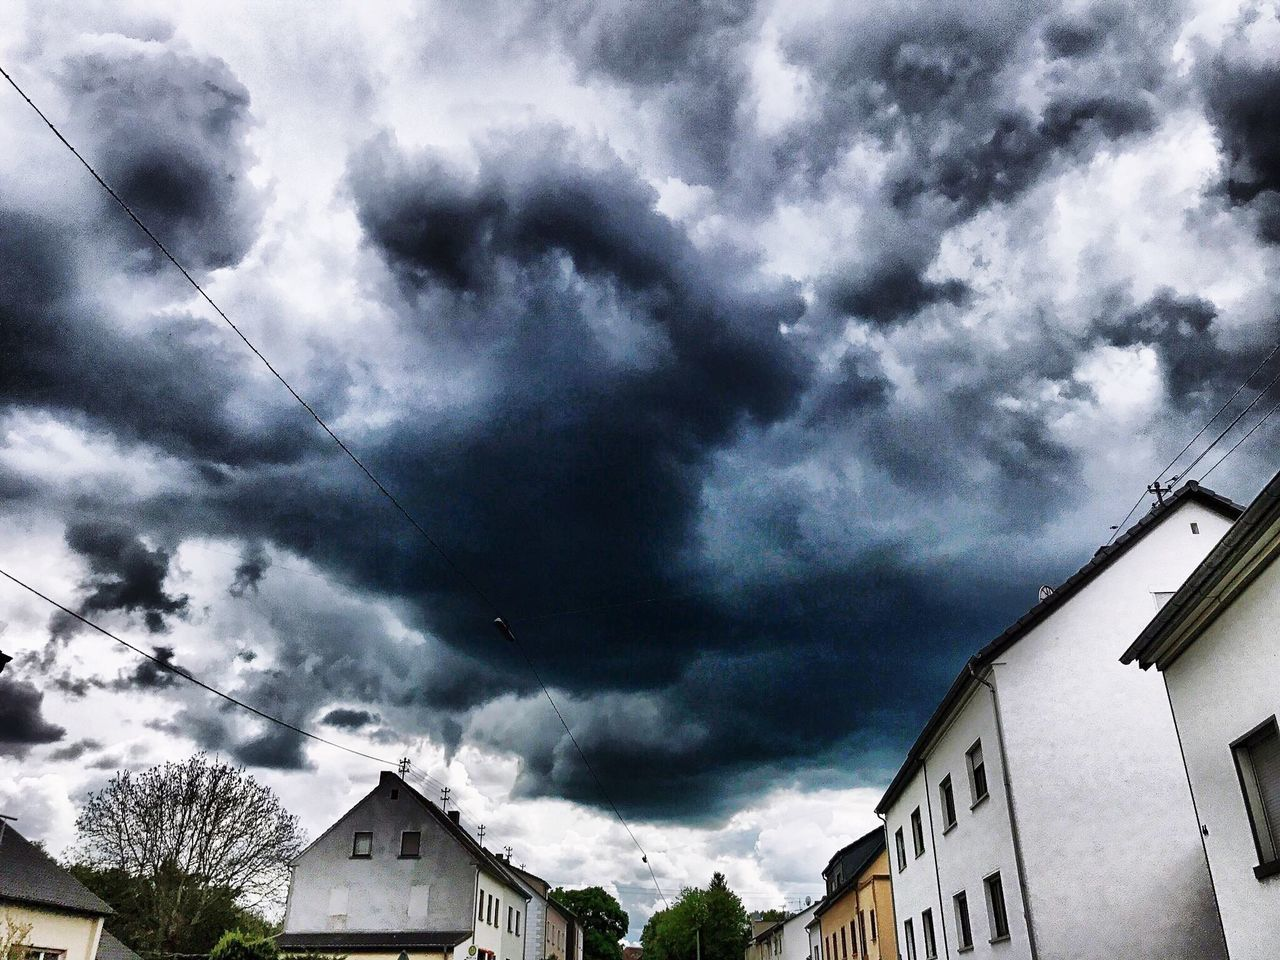 built structure, architecture, cloud - sky, building exterior, sky, house, no people, weather, storm cloud, low angle view, outdoors, day, residential building, nature